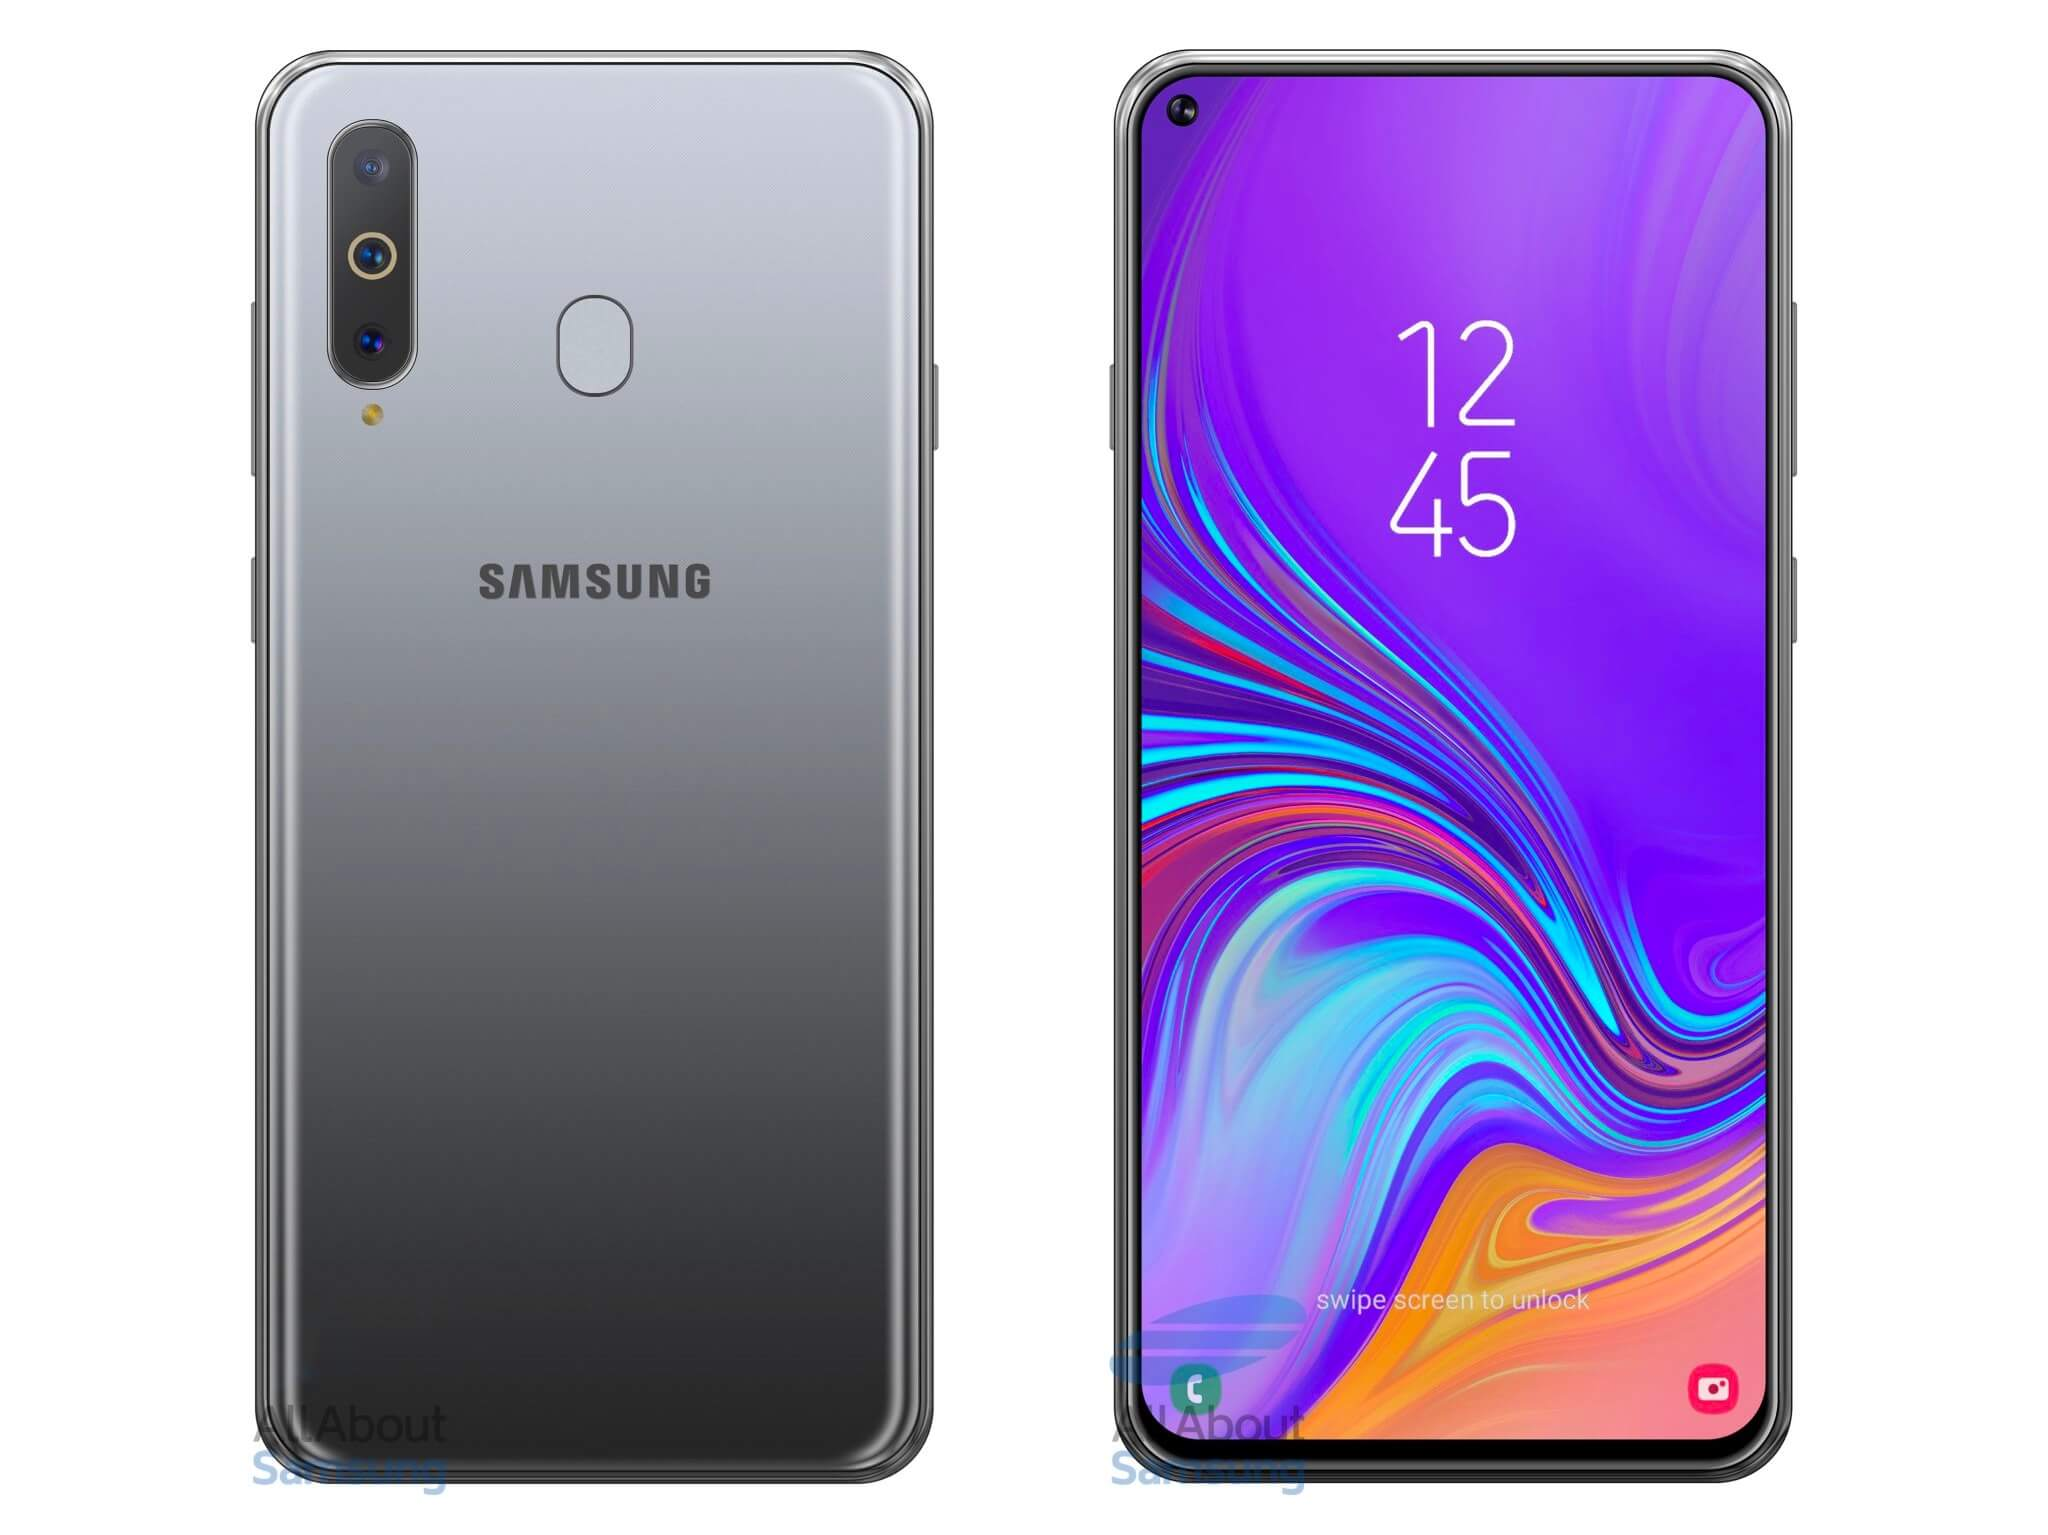 Samsung launches Galaxy A8s with Infinity-O display